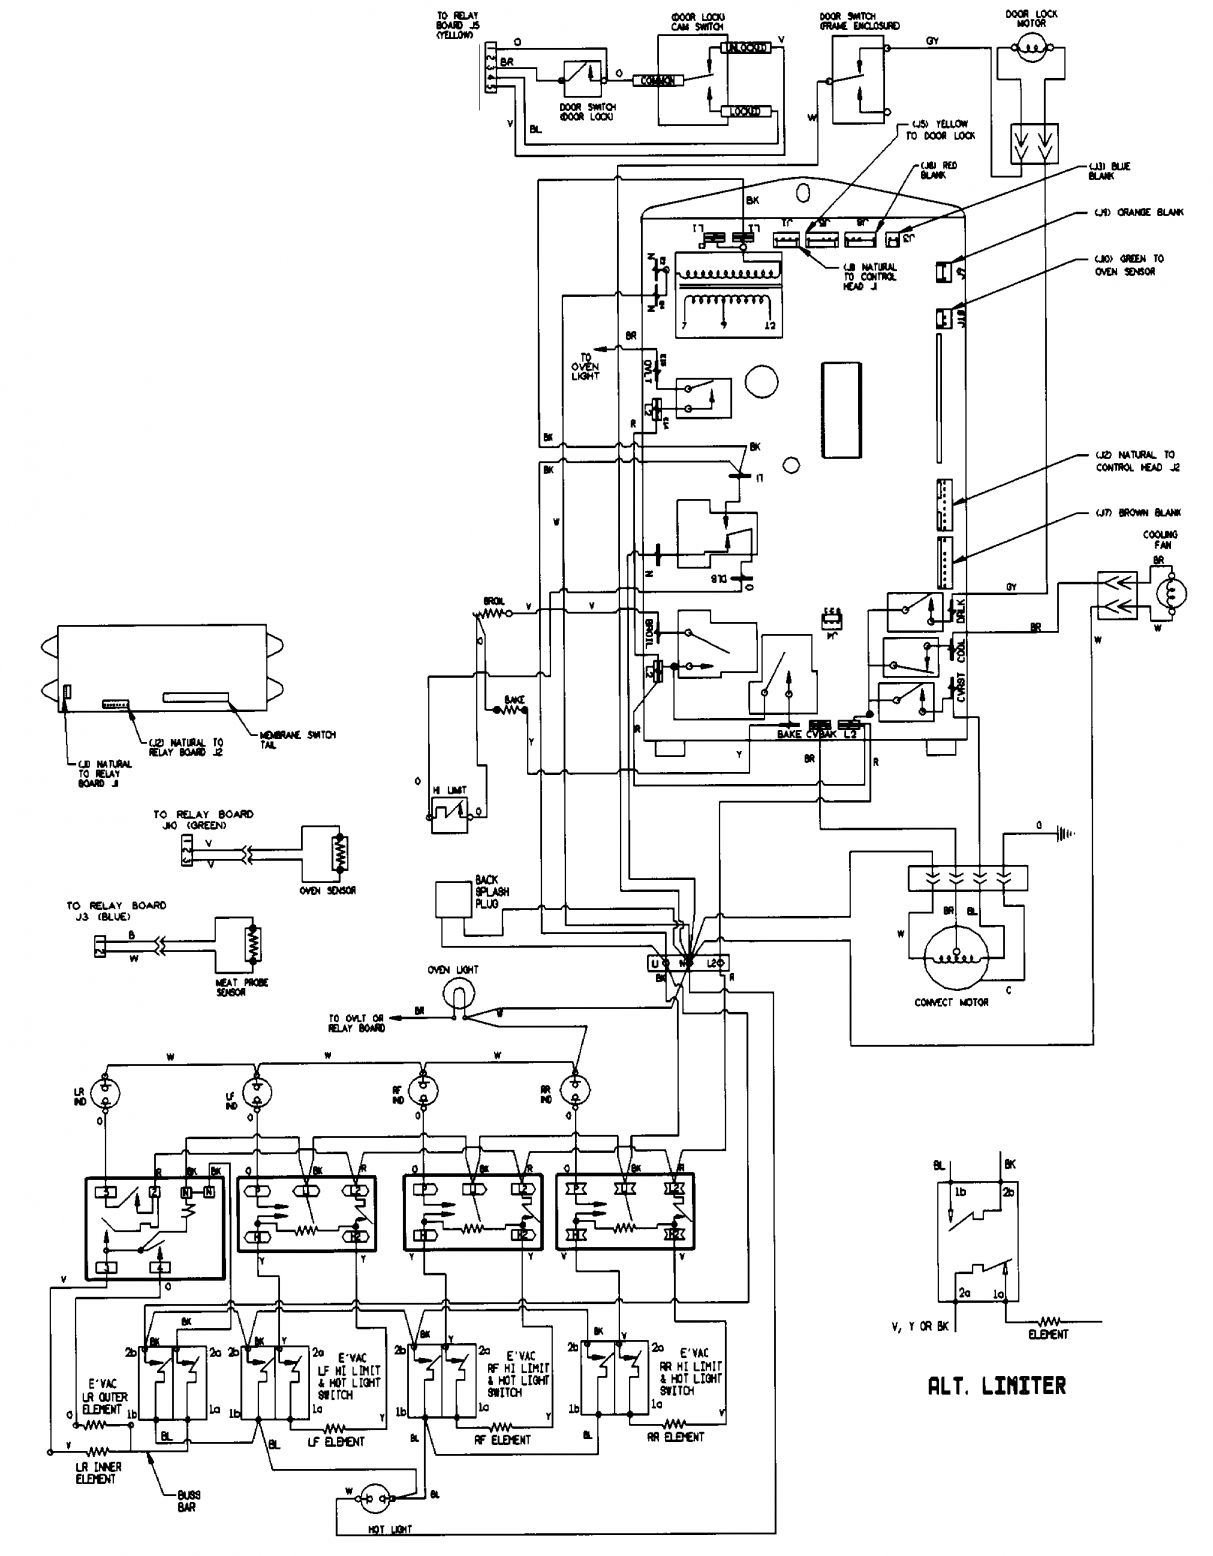 Whirlpool Electric Oven Wiring Diagram